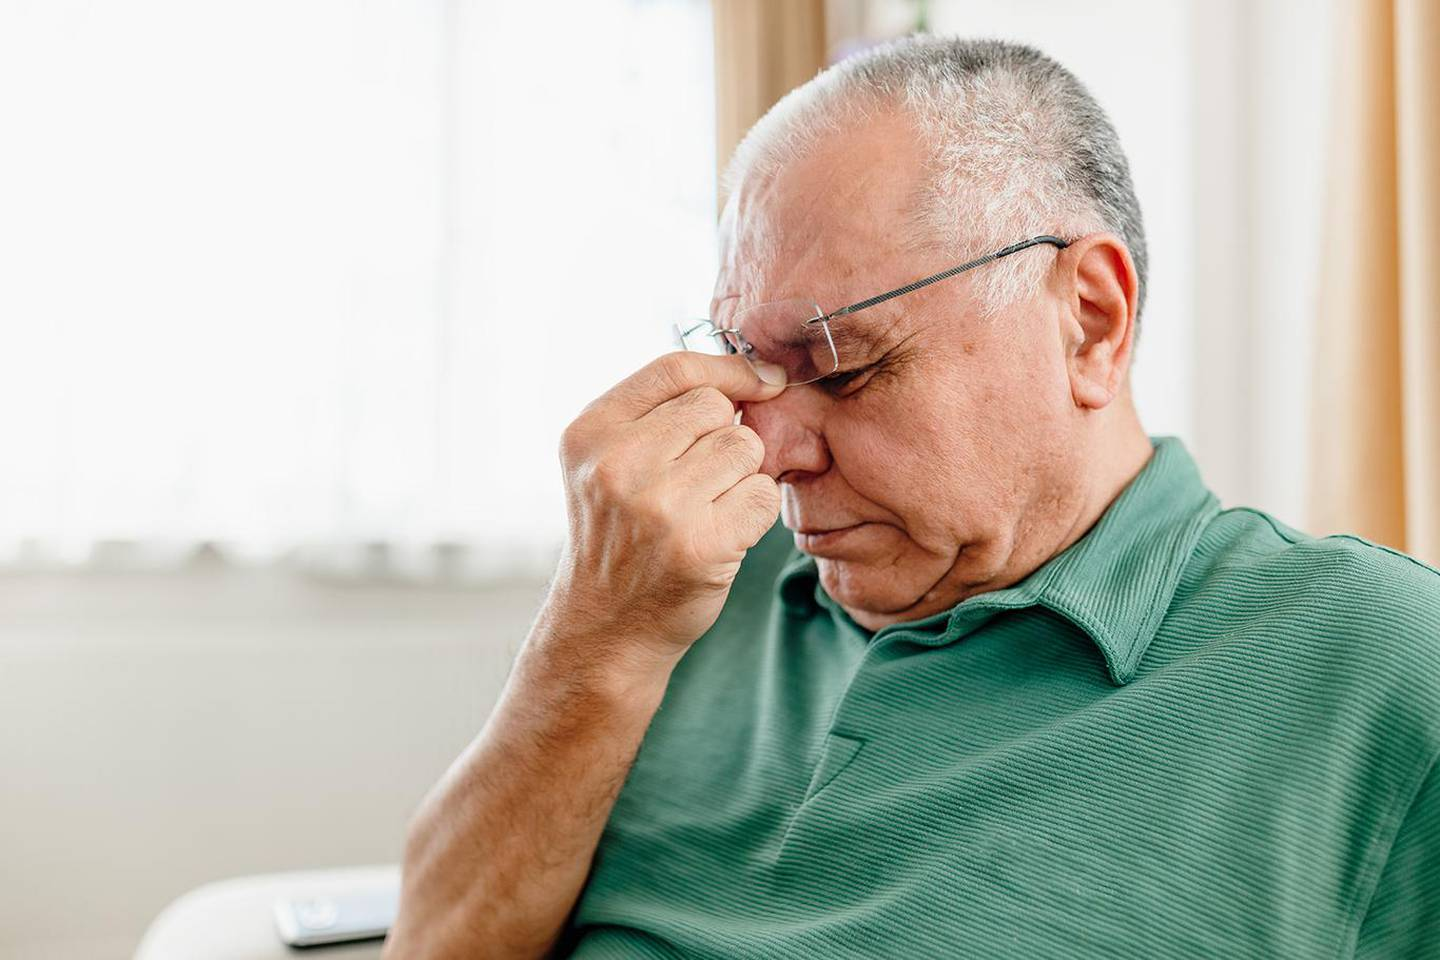 A Distraught Senior Man Suffering From a Migraine